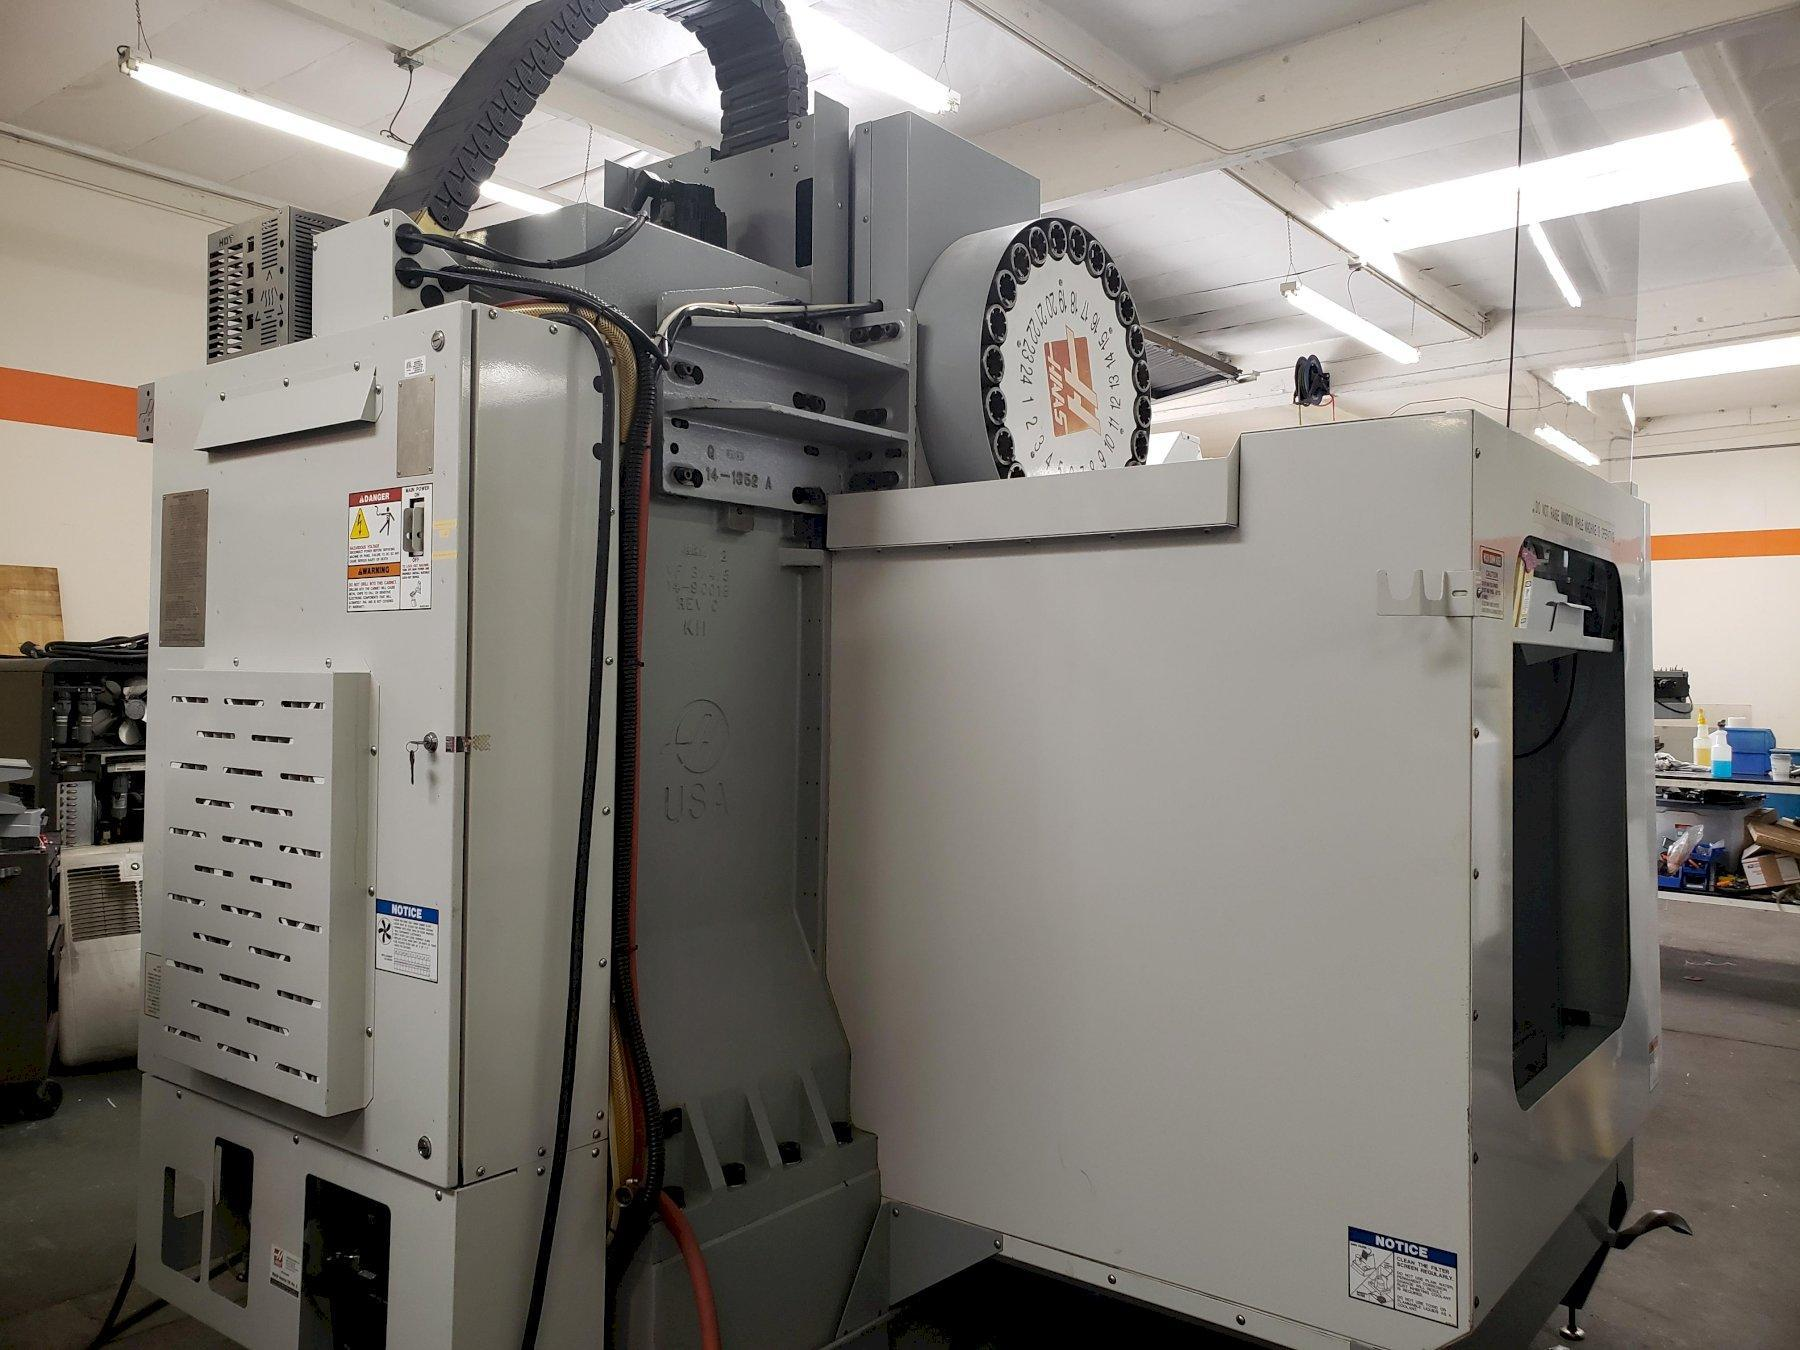 Haas VF-3SS VMC 2006, 4th Axis Ready, Programmable Coolant, High Speed Tool Changer, 12k RPM Spindle, Inline Direct Drive Spindle, Remote Jog Handle, Air Gun, and Chip Auger.